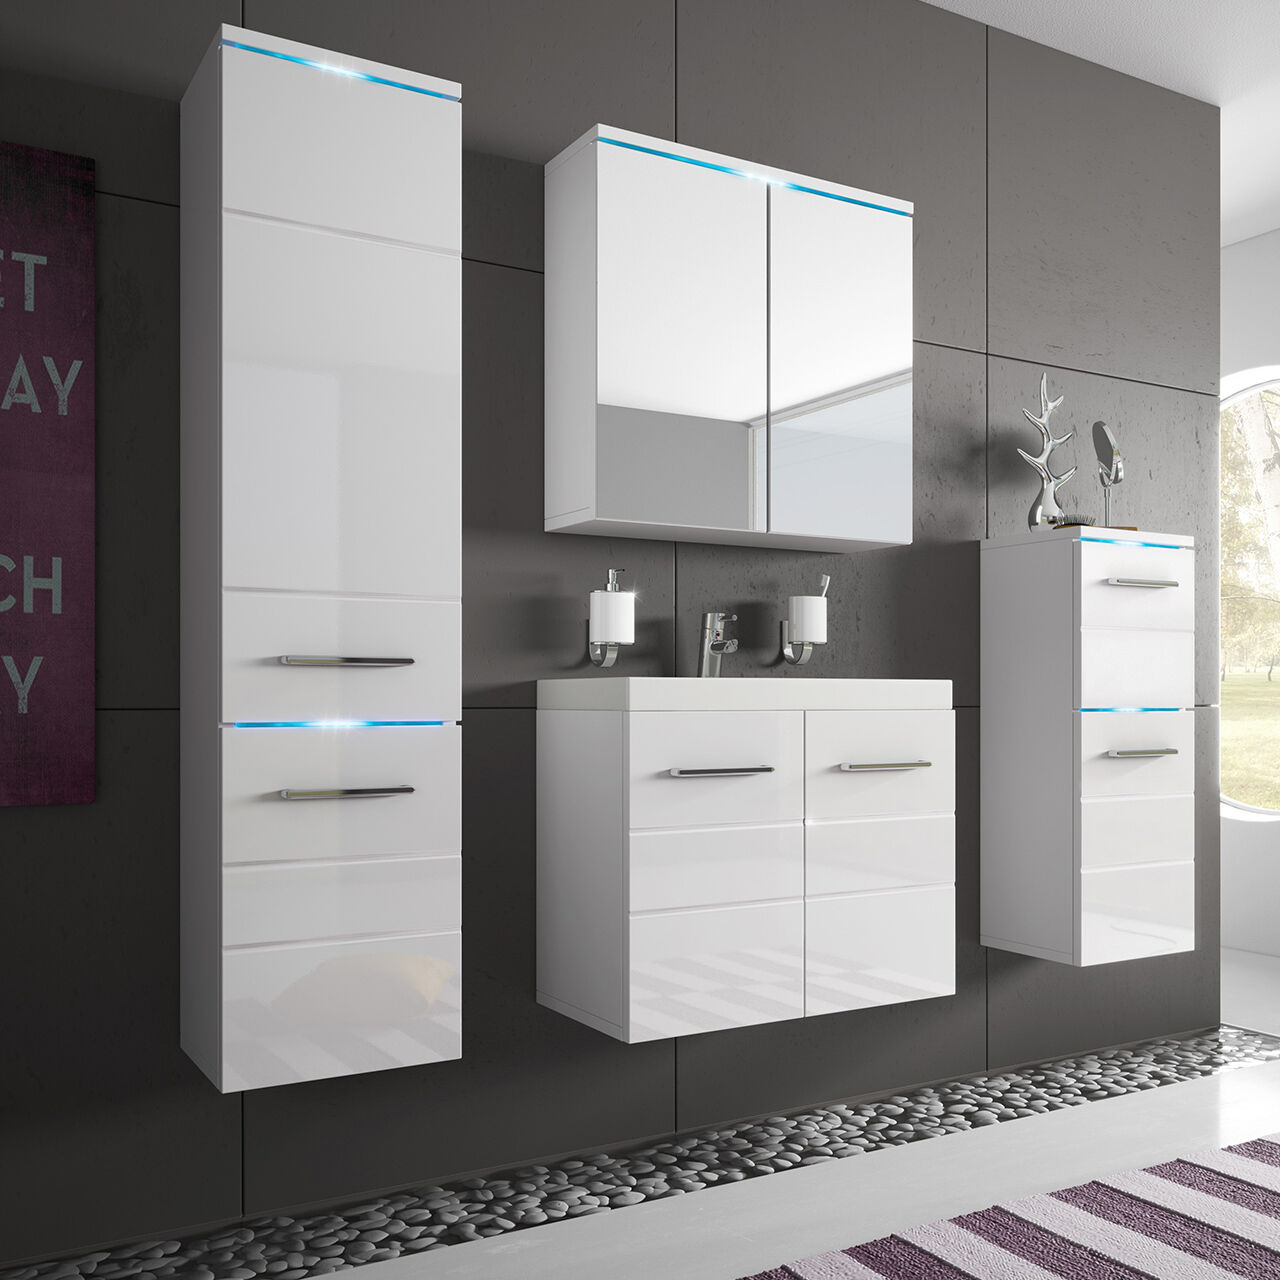 moderne badm bel set badezimmer savona 5tlg mit waschbecken wei hochglanz eur 285 00. Black Bedroom Furniture Sets. Home Design Ideas